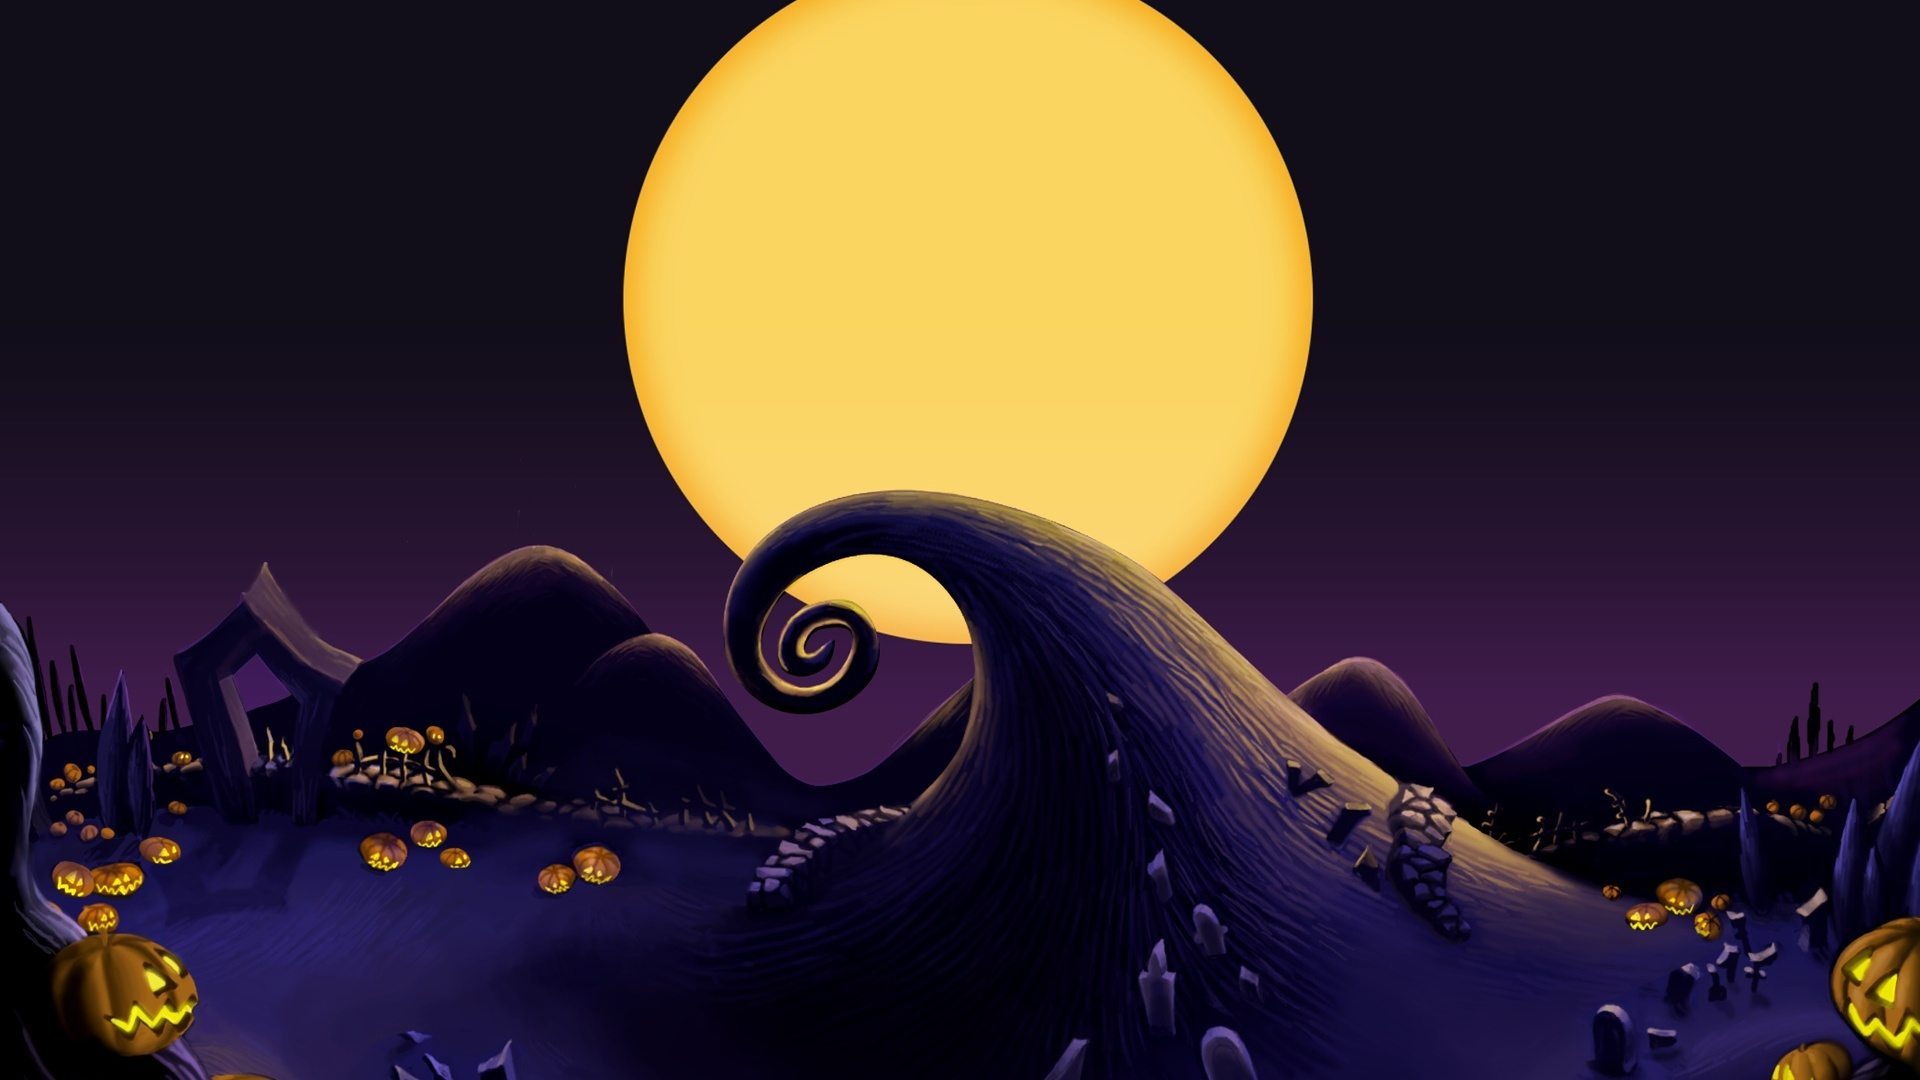 1920x1080 The Nightmare Before Christmas Landscape desktop 1920x1080